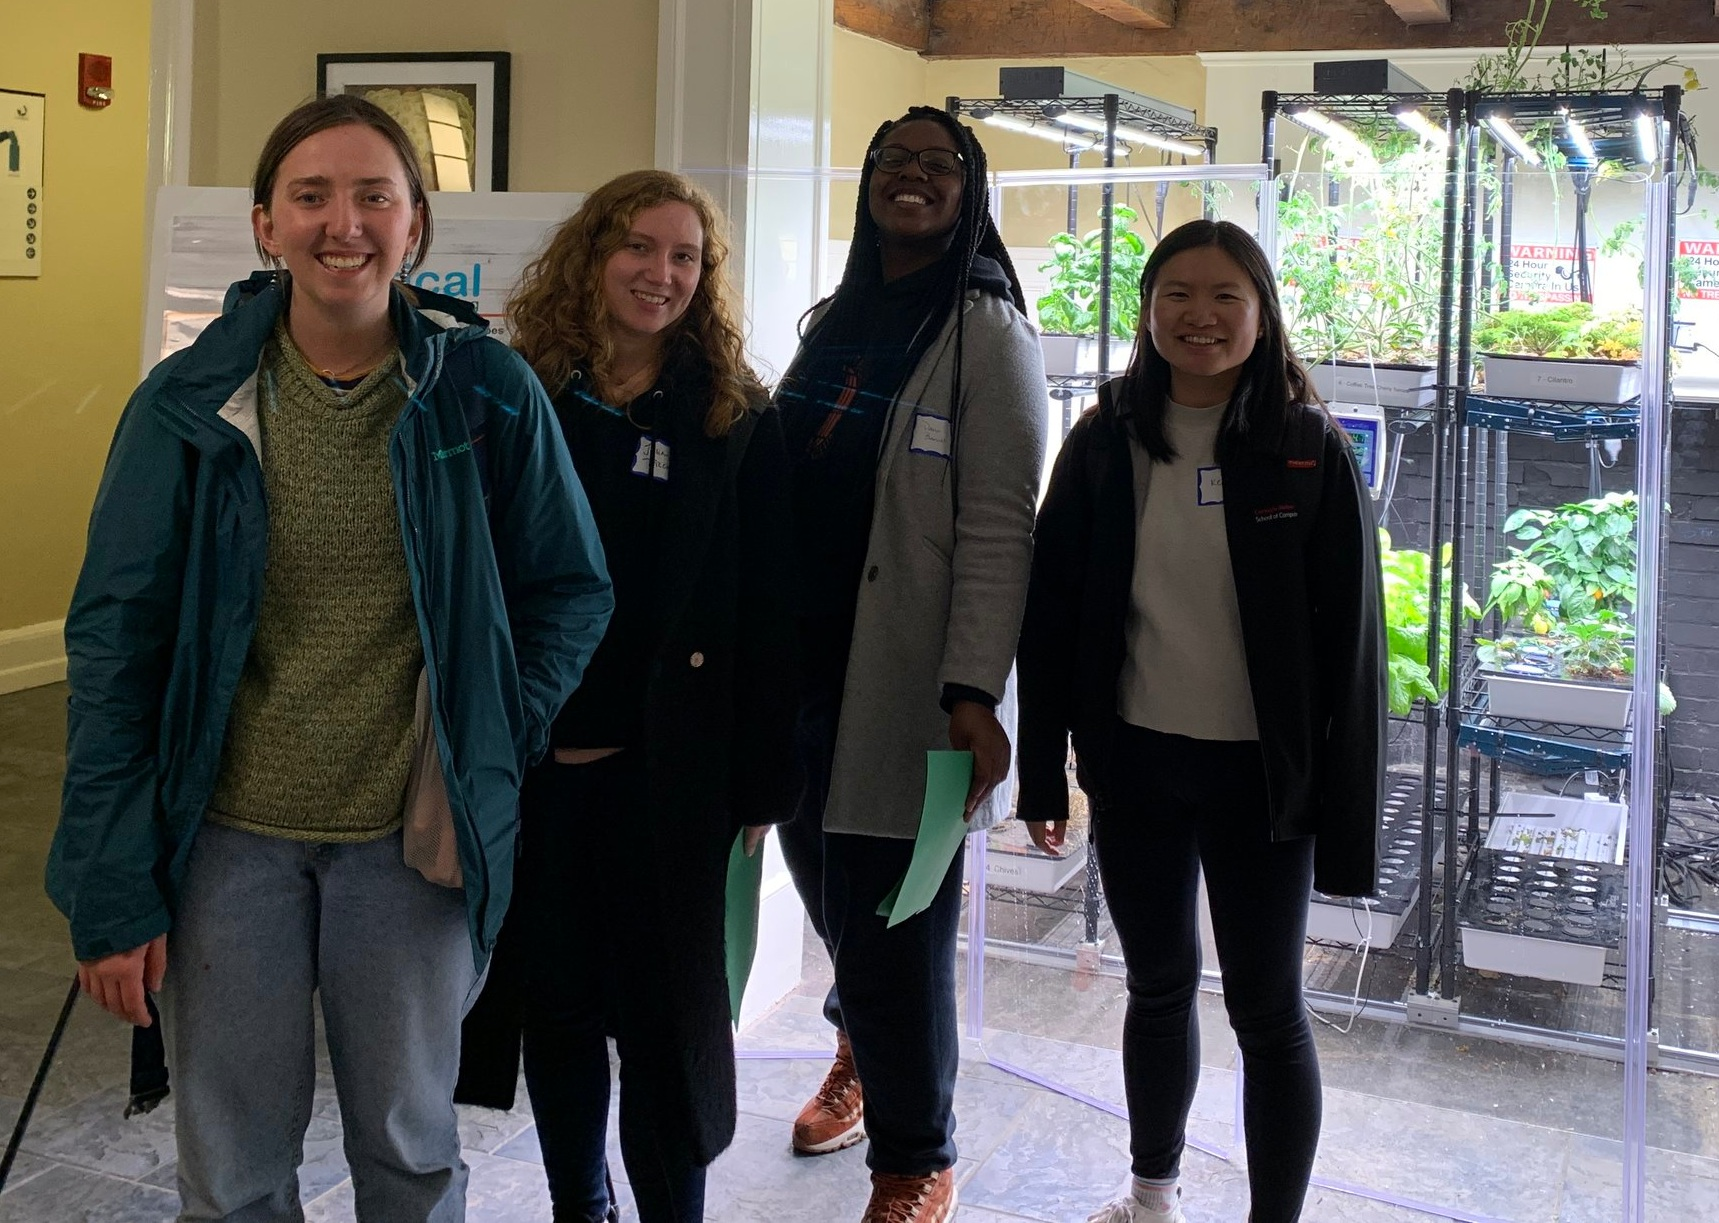 The project team included (pictured left to right) Juliana Landis, Environmental Sciences and Economics from the University of Vermont; Julia Tricca, Art and Environmental Studies from Clark University; Dana Barnes, Psychology and Architecture from the University of Hartford; Kelly Li, Architecture at Carnegie Mellon University